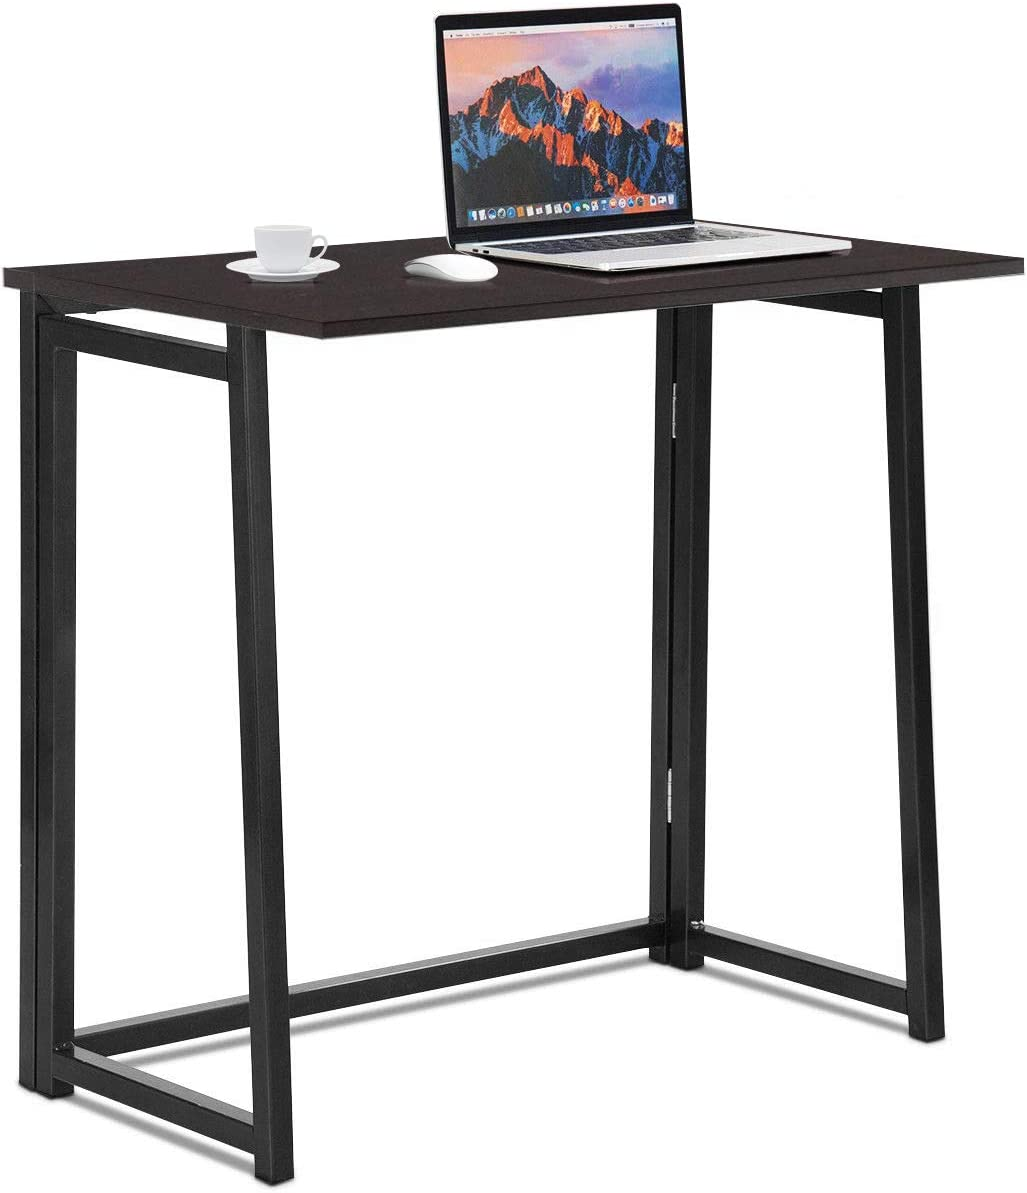 Tangkula Folding Desk, No Assembly Small Foldable Computer Desk, Home Office Laptop Table Writing Desk, Compact Study Reading Table for Small Space (Coffee)